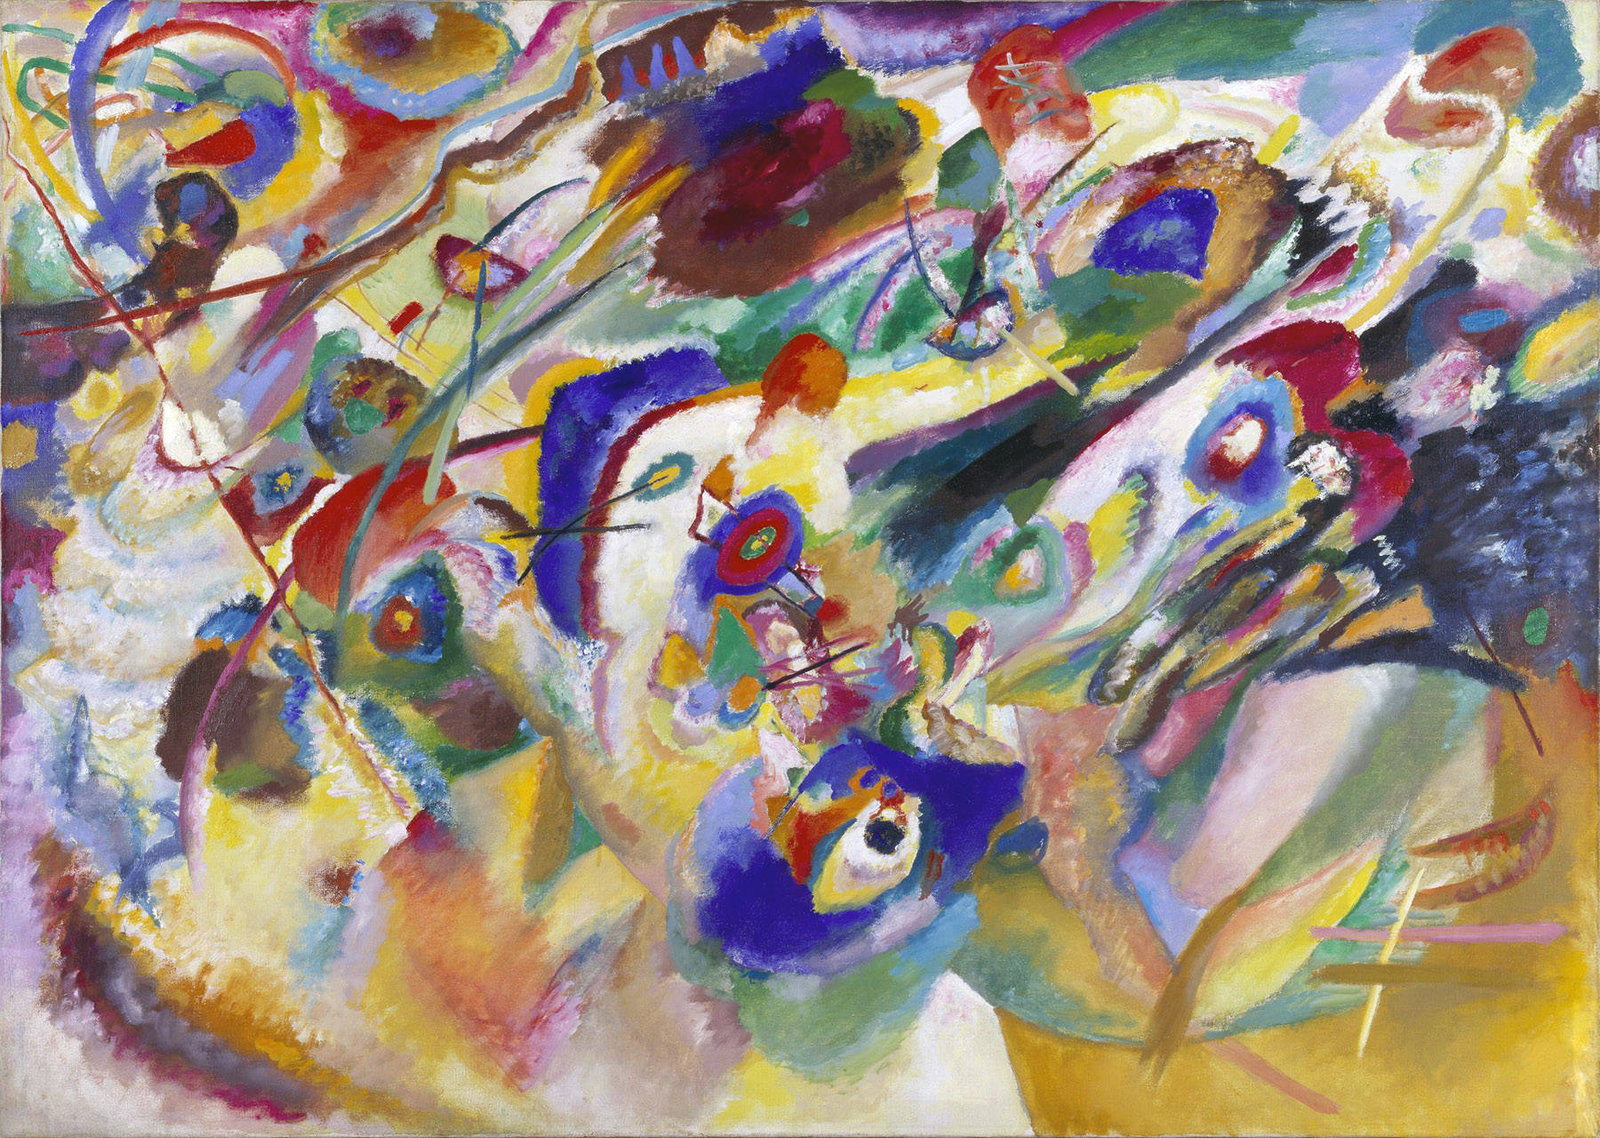 Wassily Kandinsky - Sketch 2 for Composition VII - I Require Art